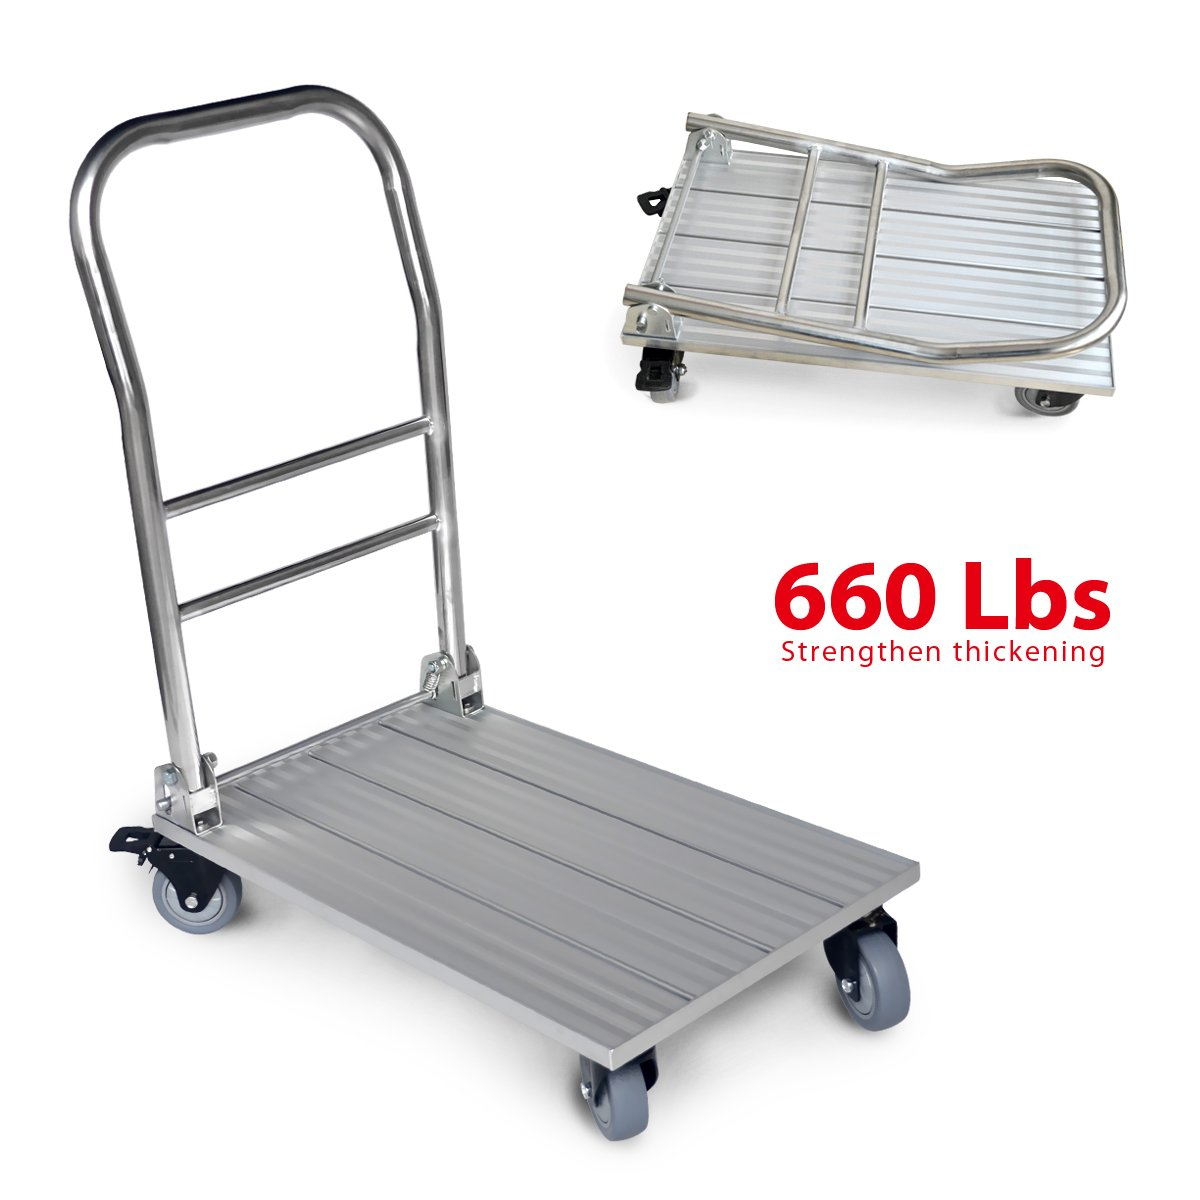 Vtuvia Folding Aluminum Platform Truck 660 lbs Foldable Push Dolly Moving Warehouse Hand Cart Lightweight Plate Trailer by VTUVIA